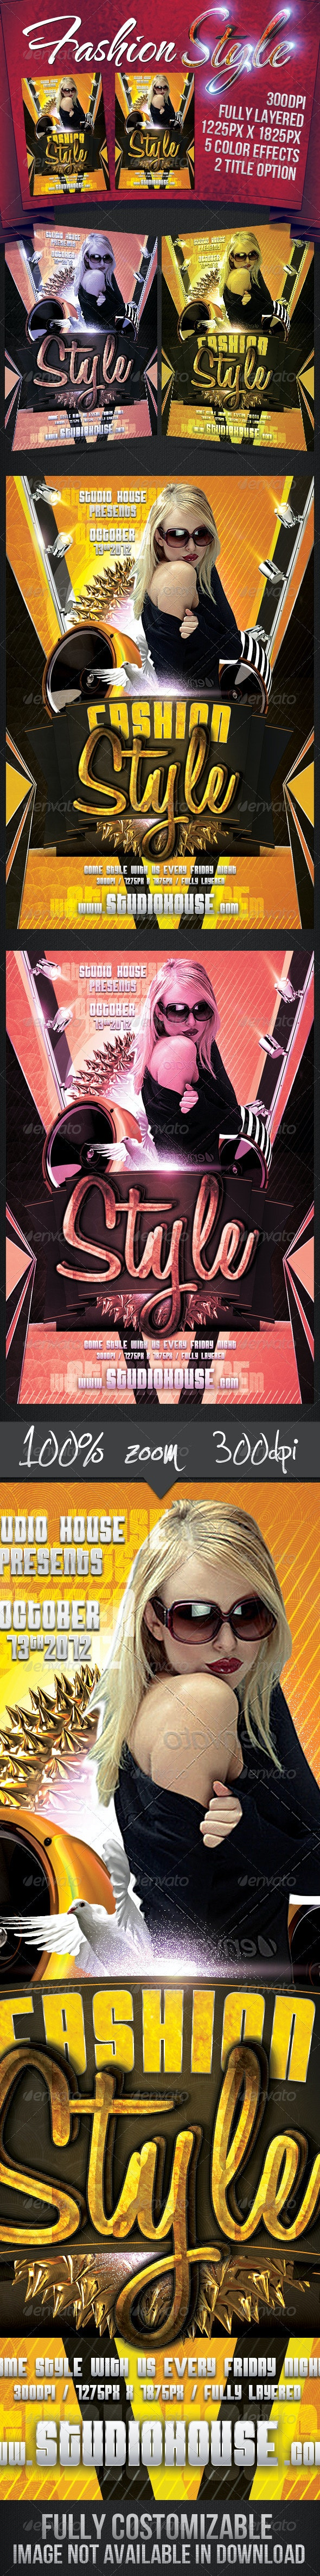 Fashion Style Party Flyer - Miscellaneous Events